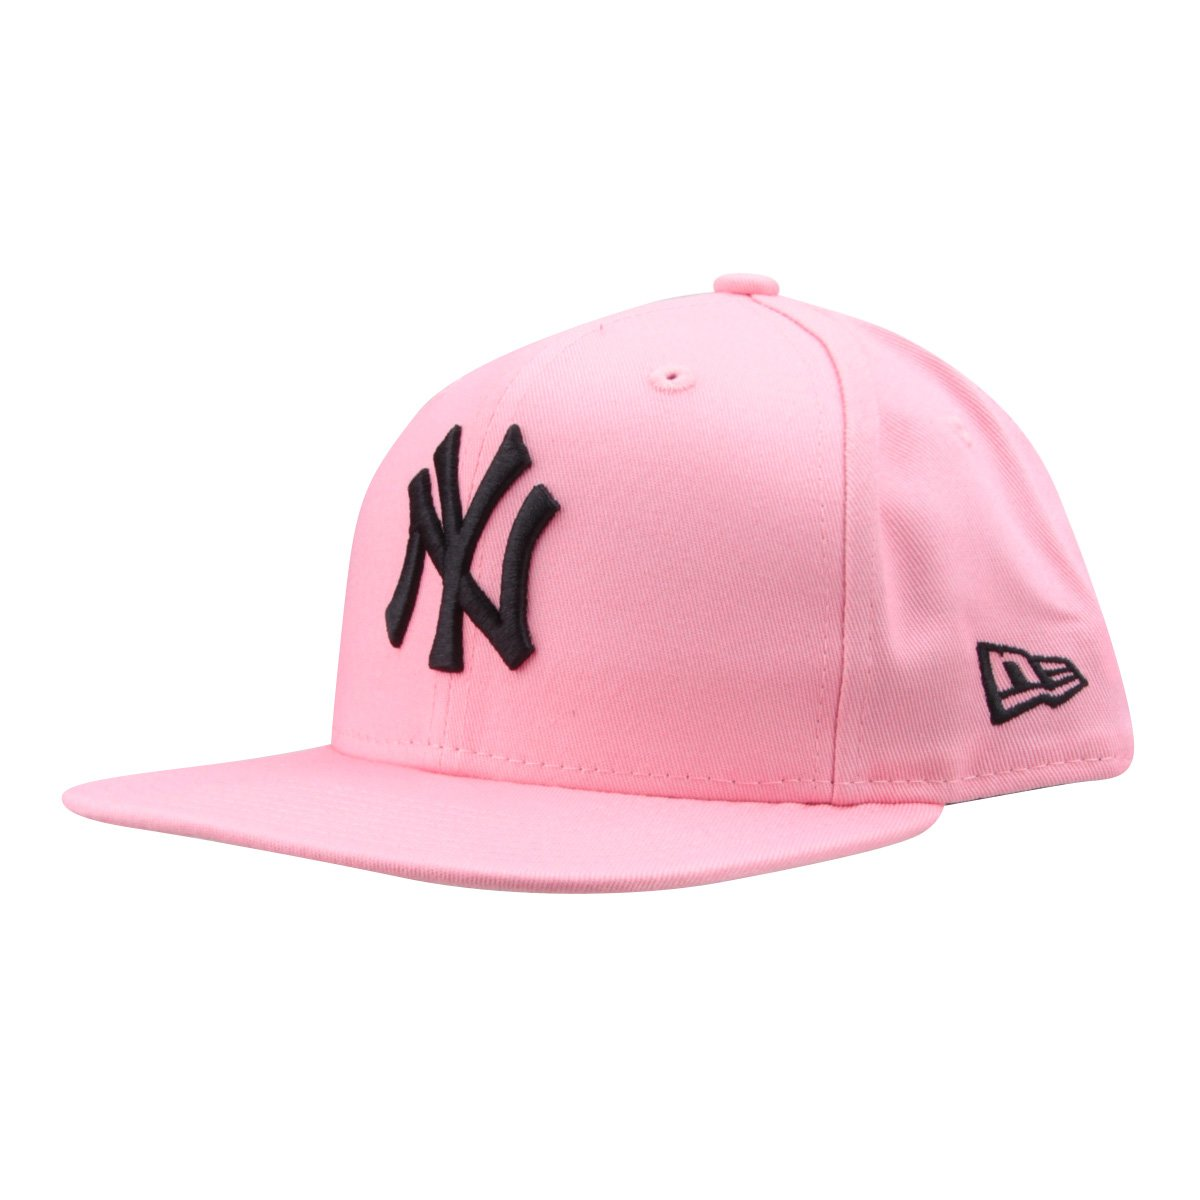 e442594f64dde Boné New Era MLB New York Yankees Aba Reta Fit - Compre Agora